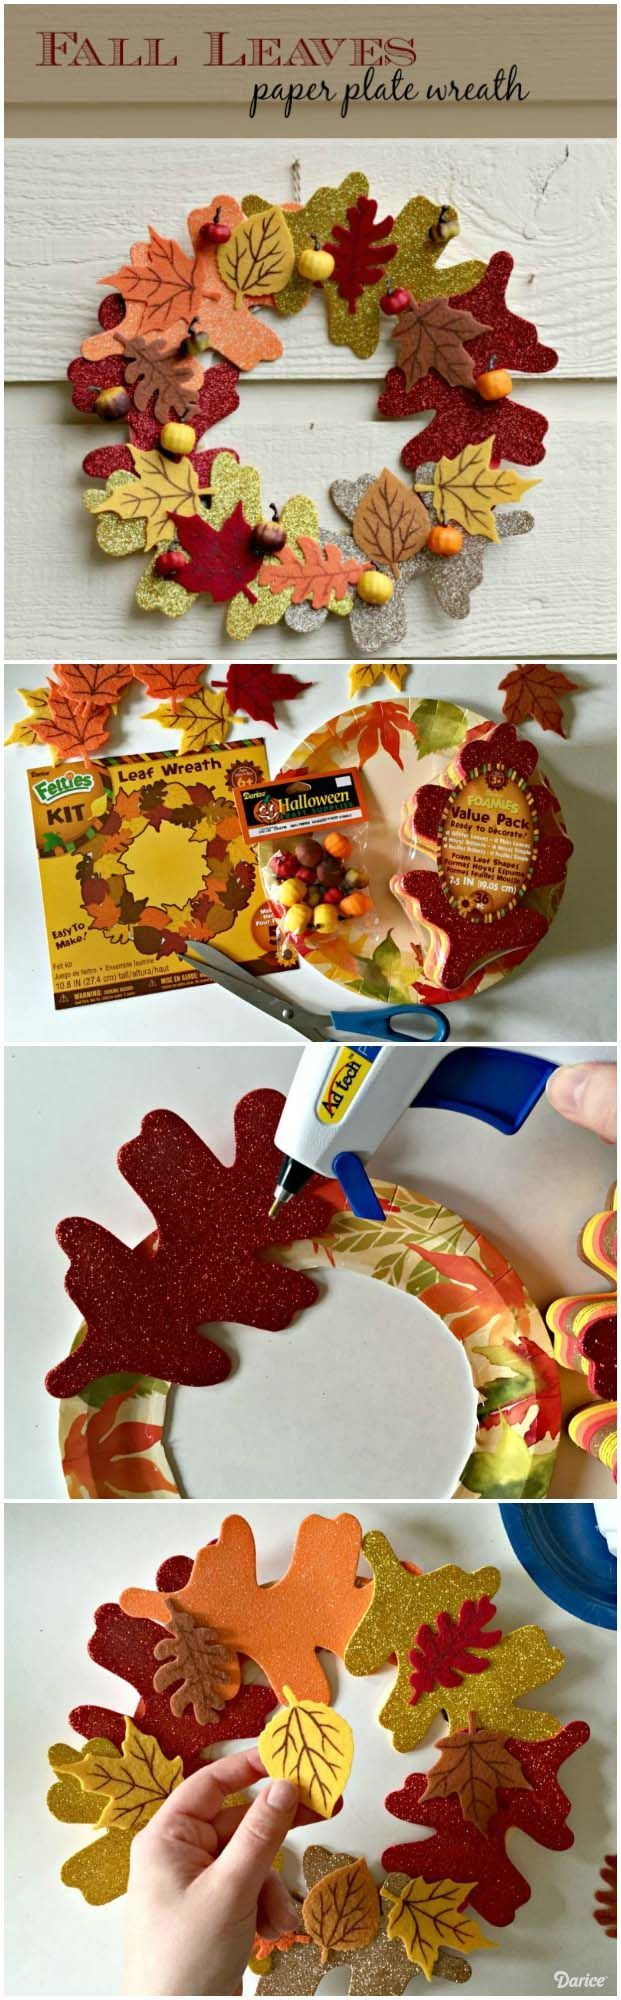 Hereu0027s a fun and easy fall leaves paper plate wreath that will look fantastic gracing your & Paper Plate Wreath: Easy Fall Leaves Idea- Darice | Fall leaves ...